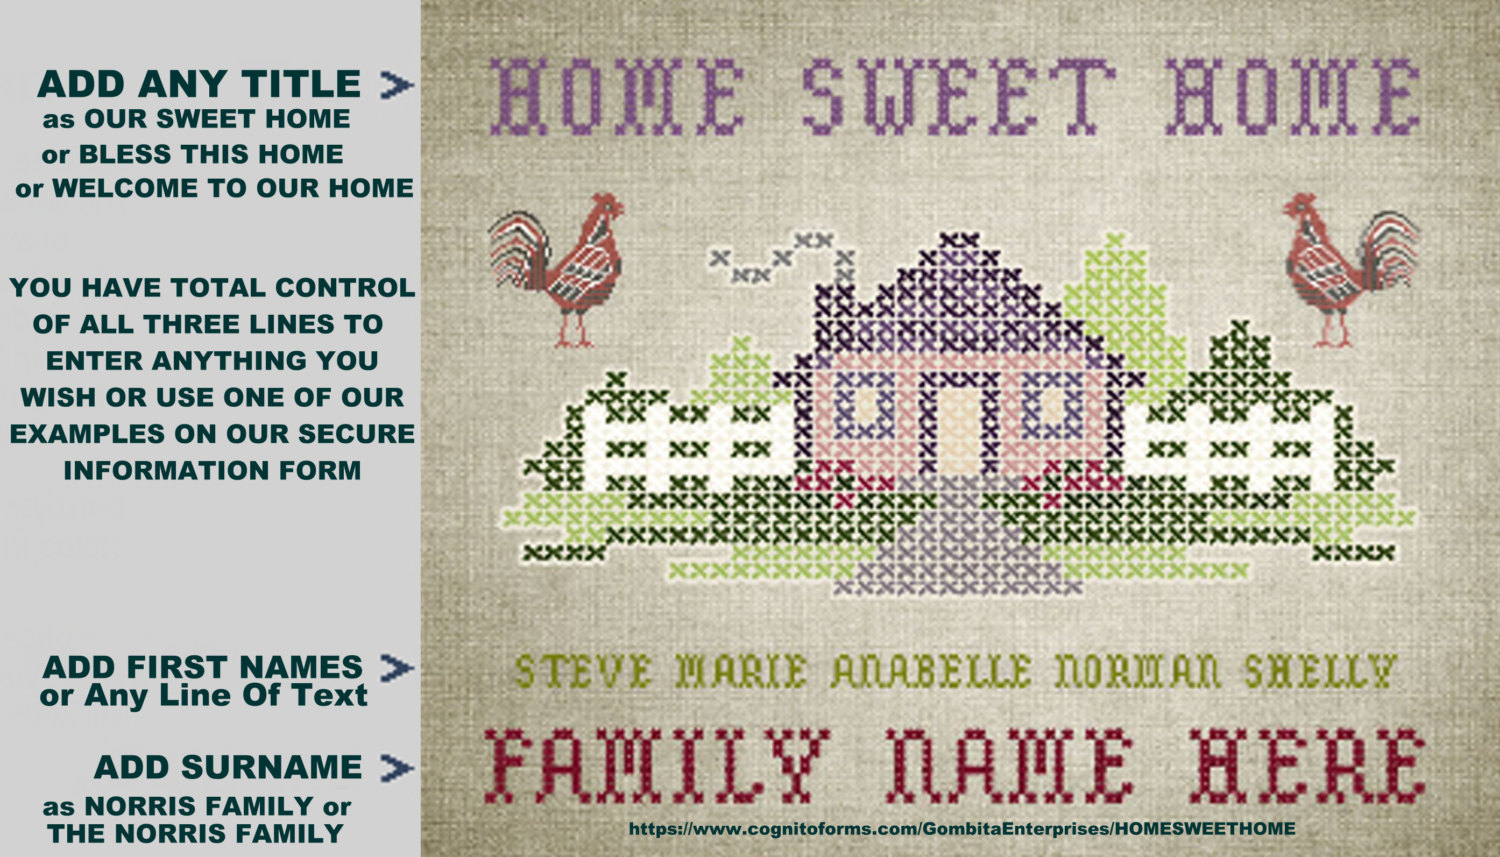 Personalize a Home Sweet Home